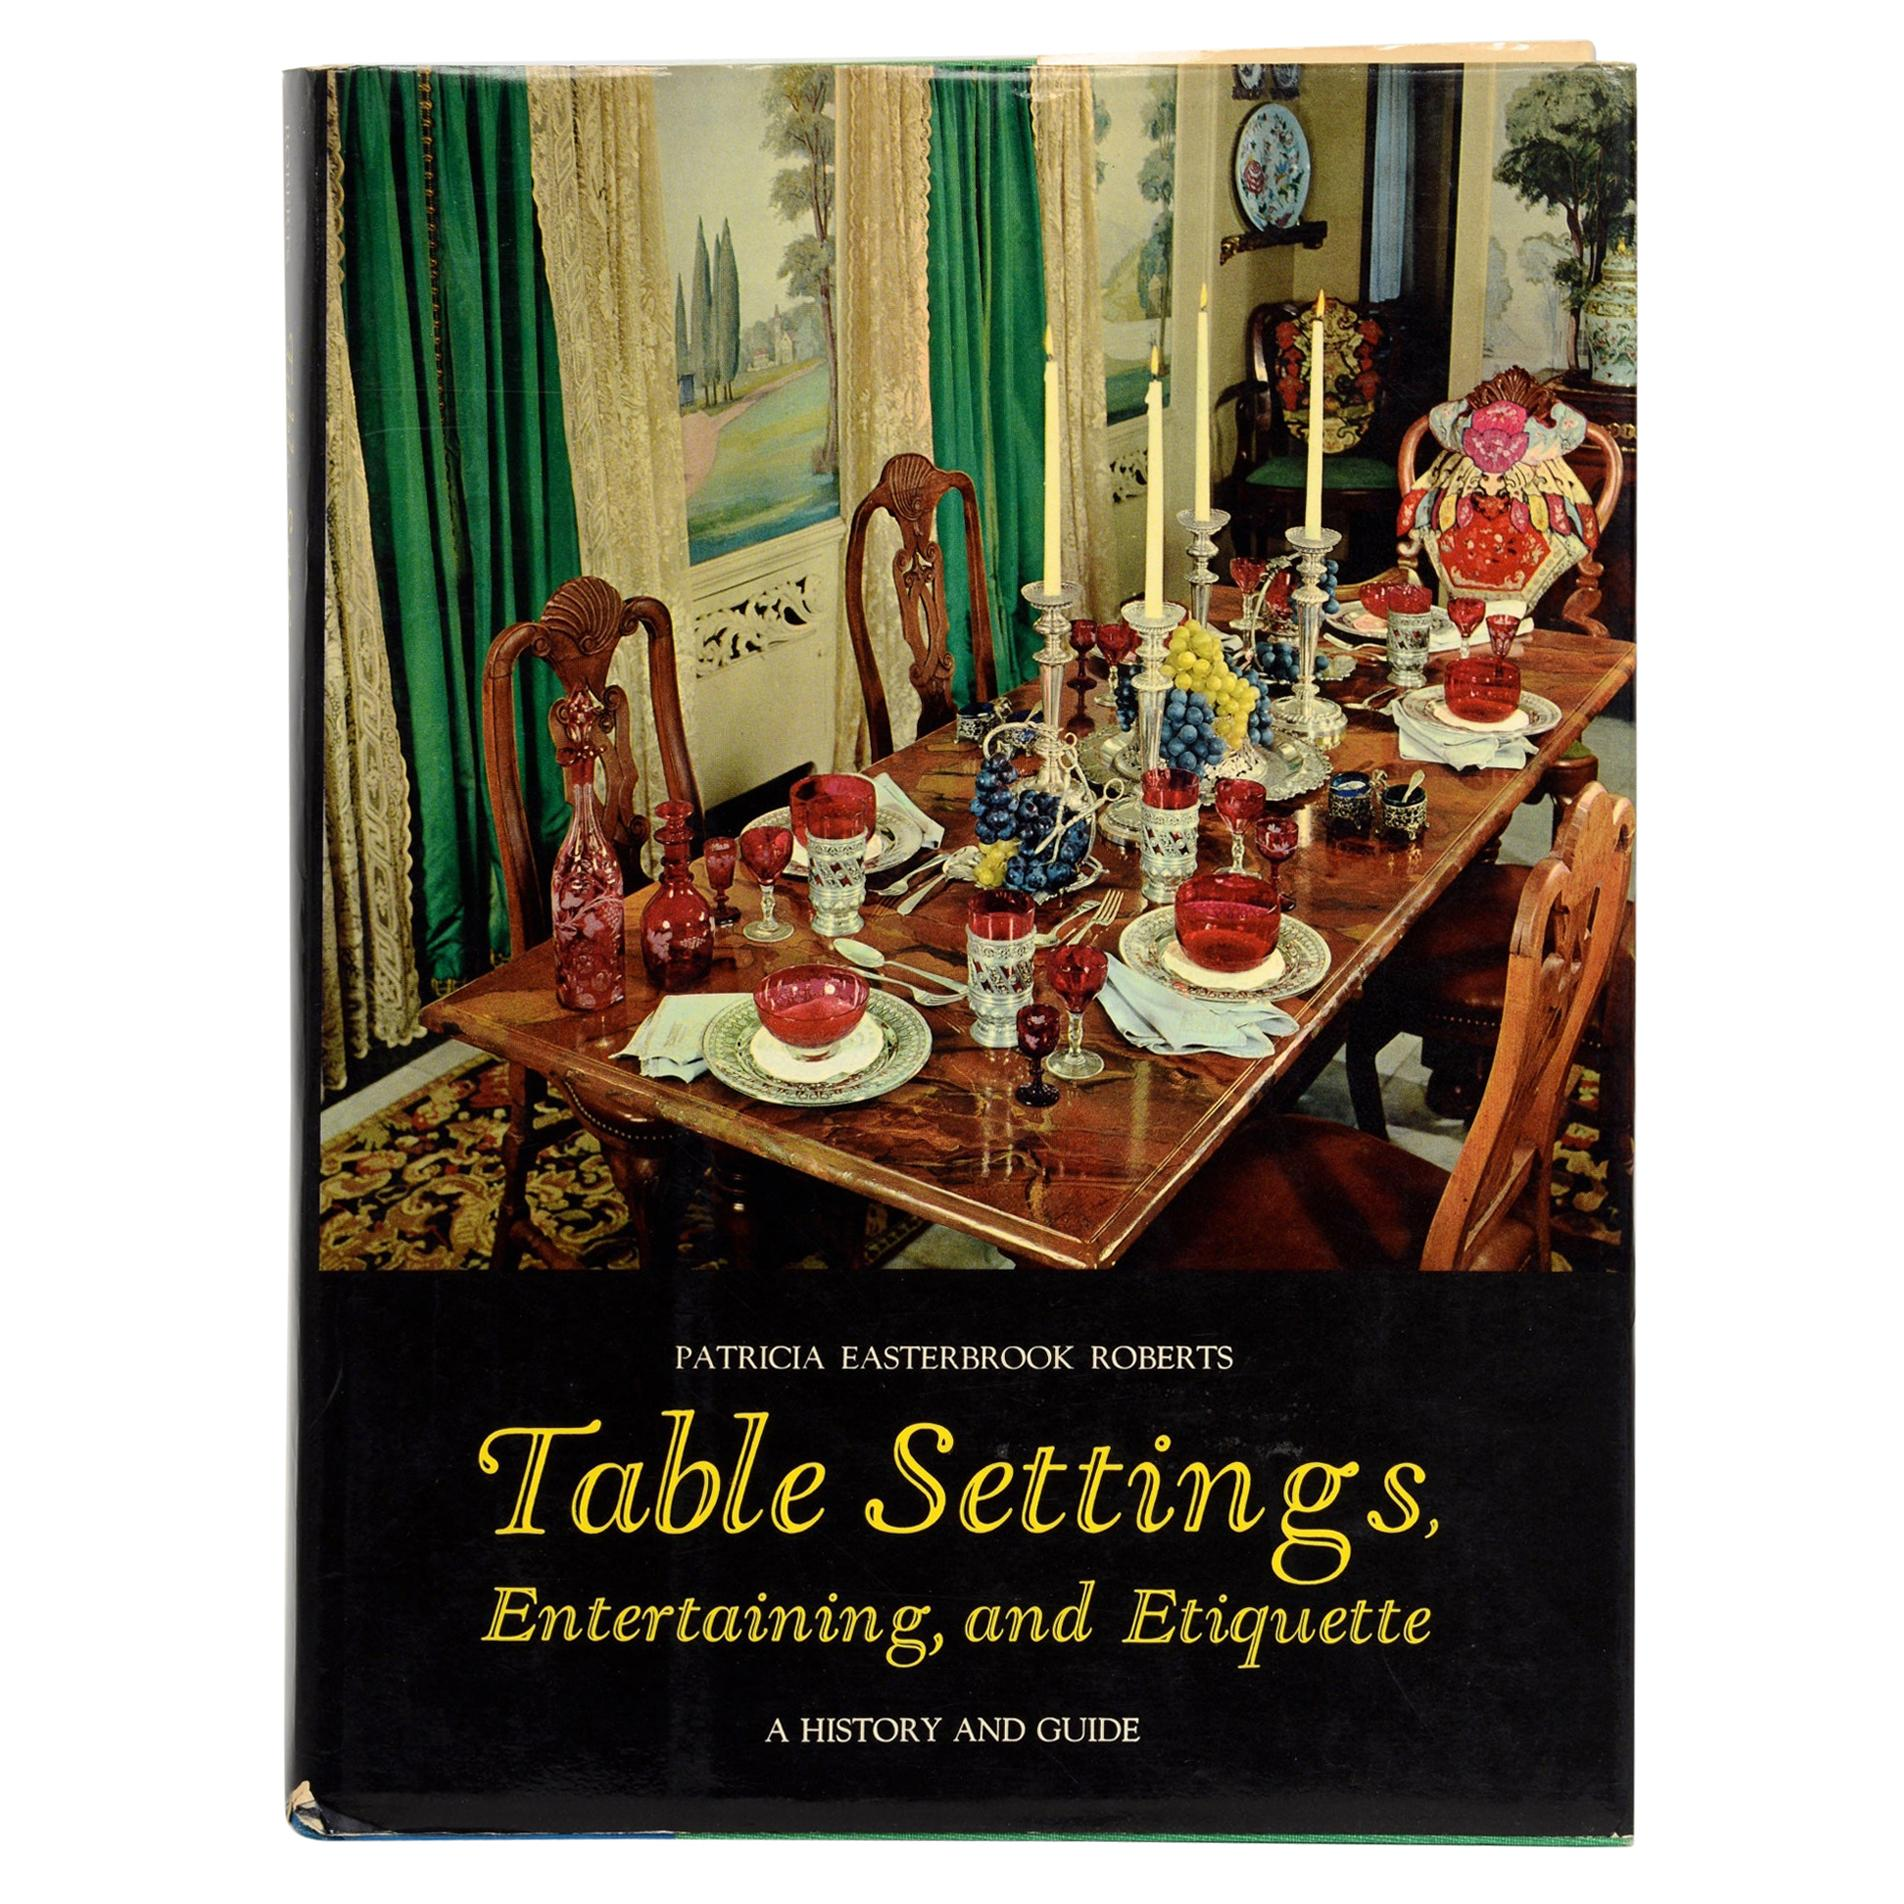 Table Settings, Entertaining and Etiquette A History and Guide